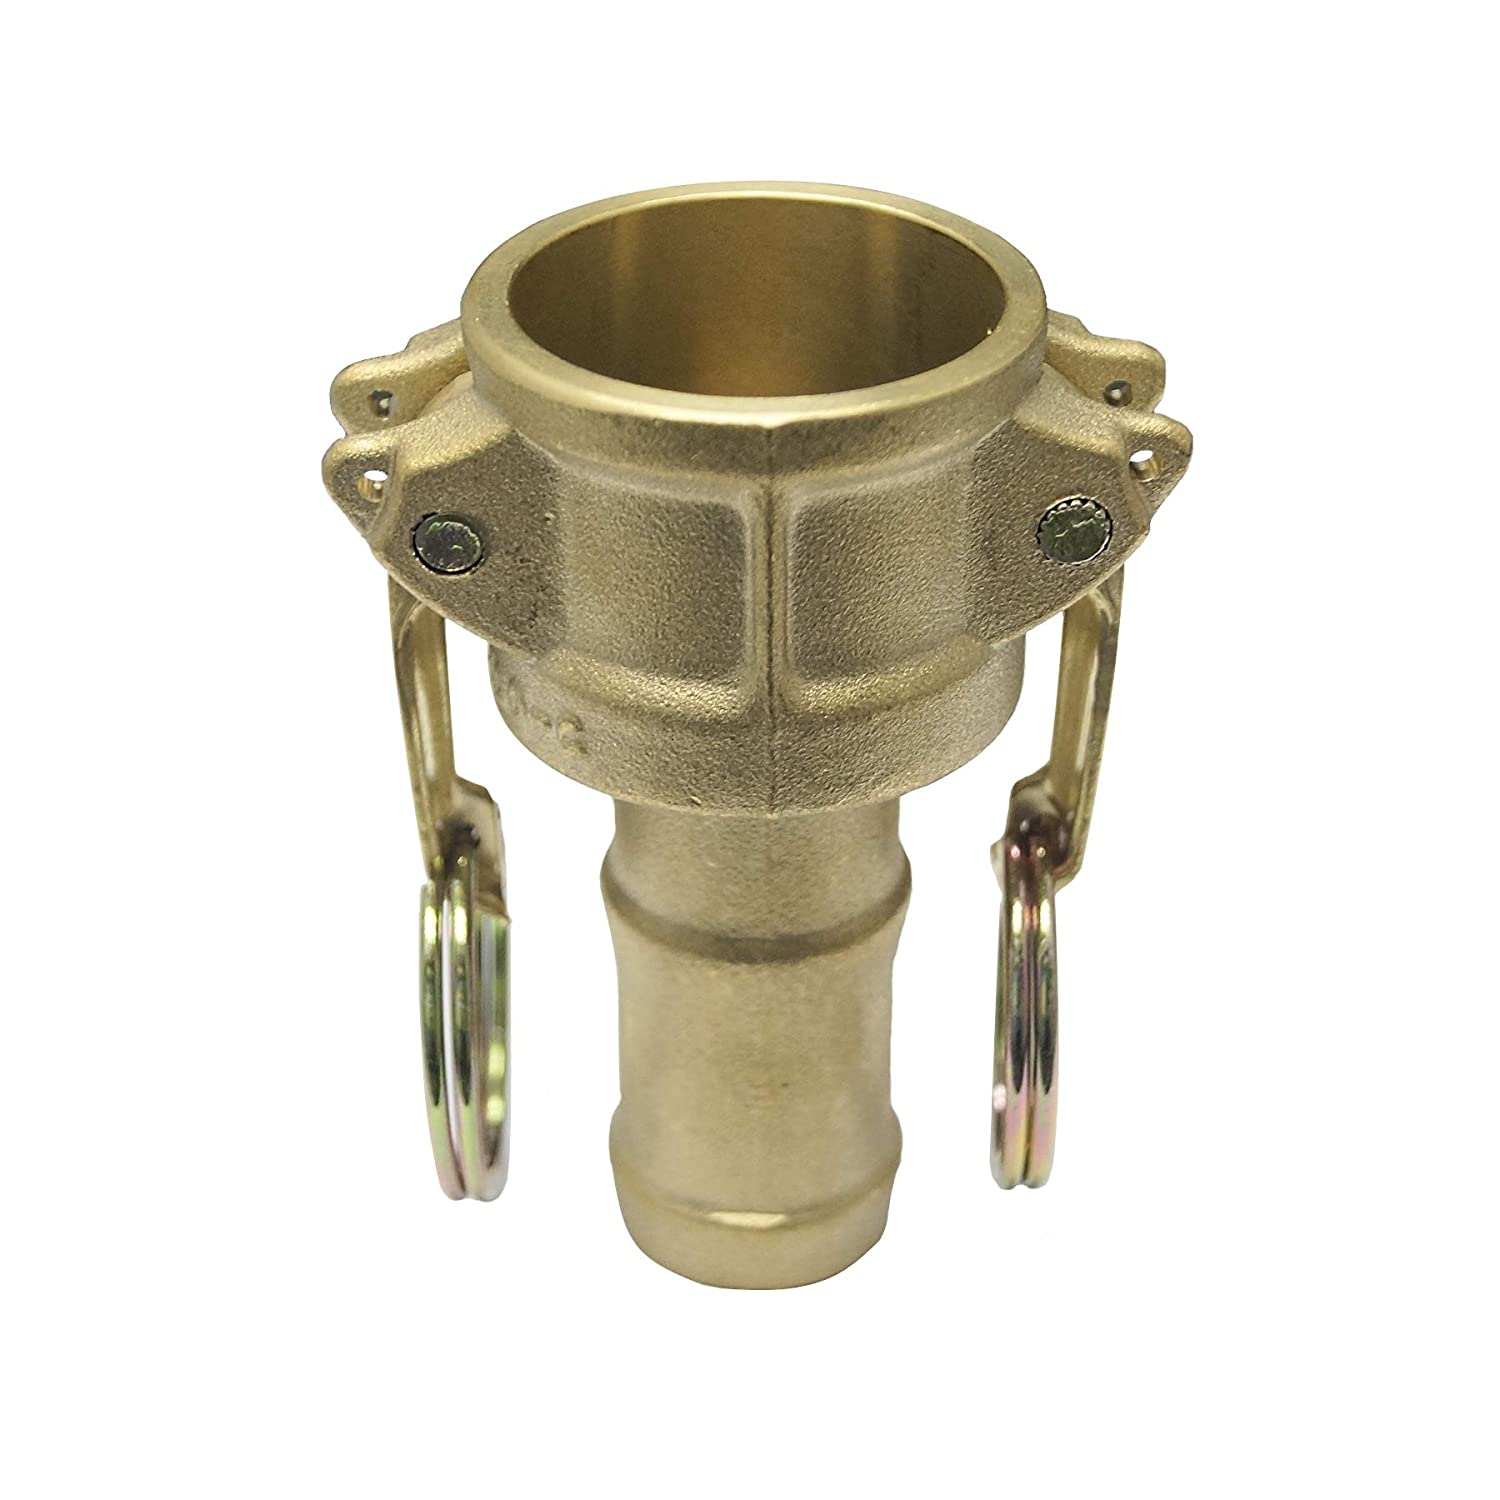 Camlock Type E Male Adapter 1//2 Cam and Groove Fitting Aluminium Material with Hose Shank